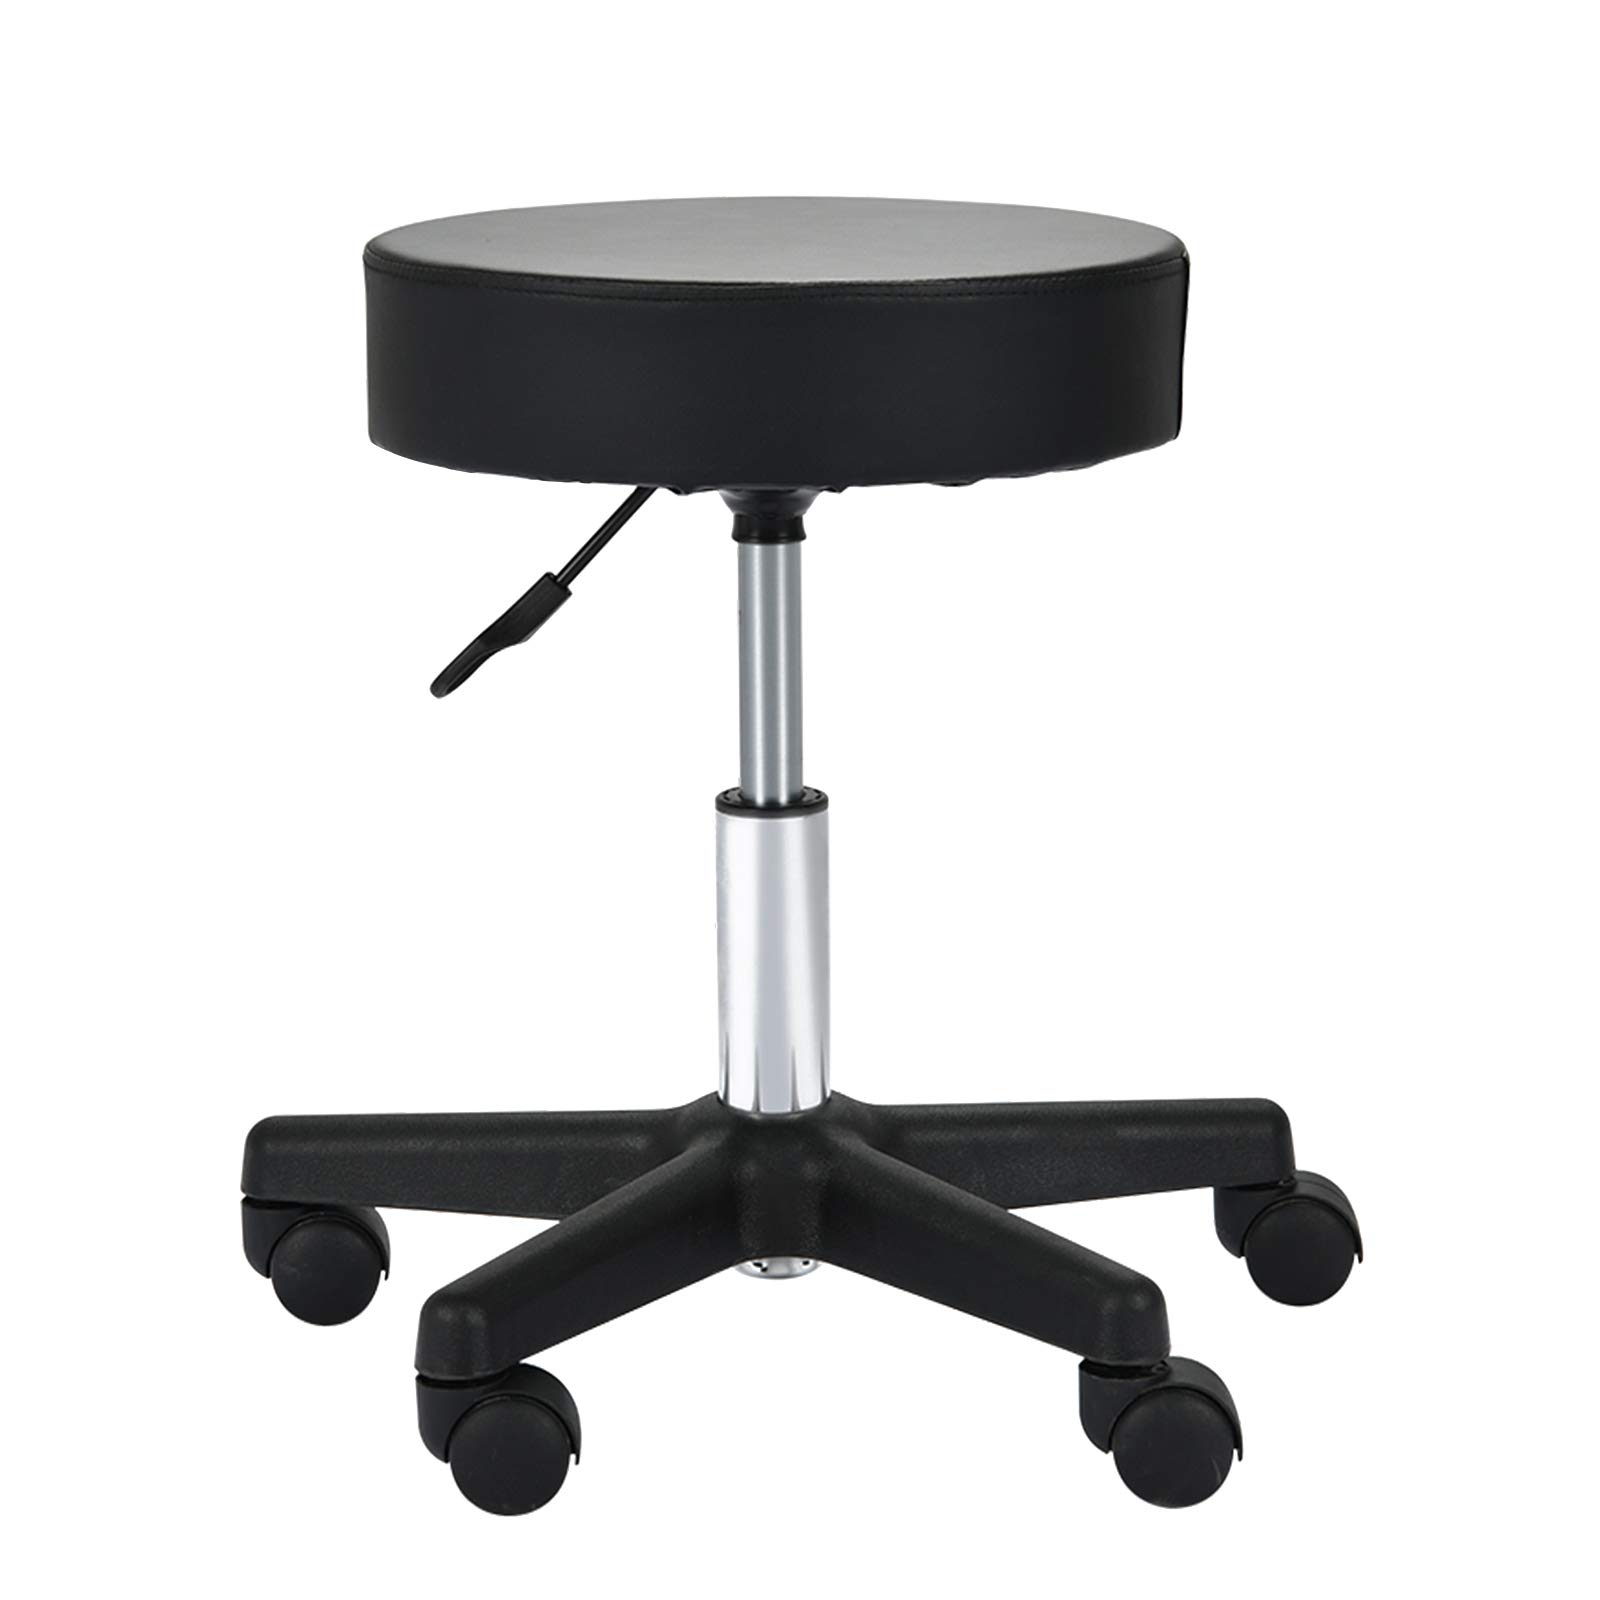 Uenjoy Adjustable Stool for Massage with Ultra-thick Sponge, PU Leather, Hydraulic Rolling Swivel, Massage Spa Tattoo Salon Chair, Black